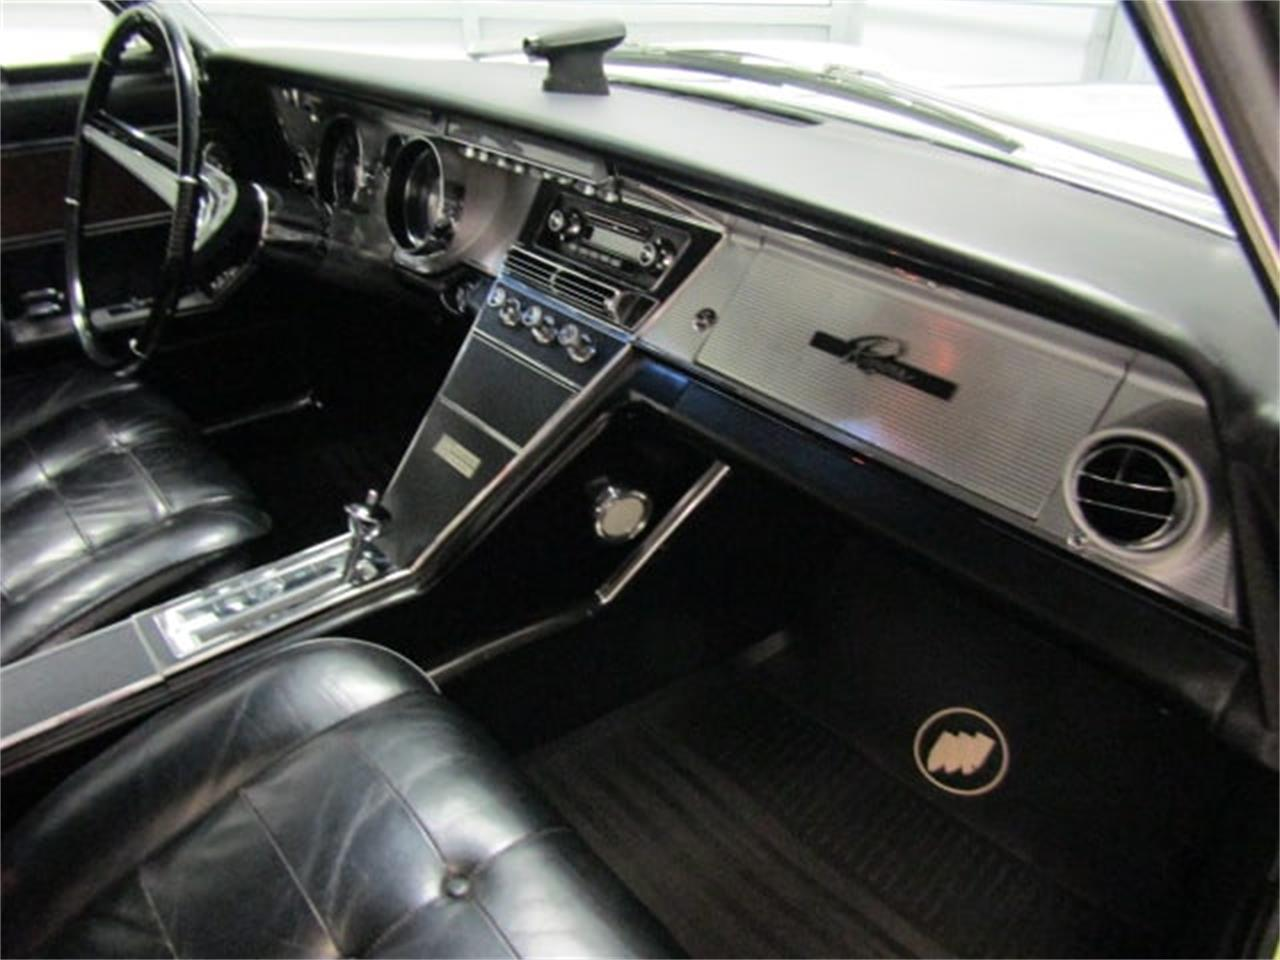 Large Picture of 1963 Buick Riviera located in Virginia - $38,910.00 Offered by Duncan Imports & Classic Cars - MJSM